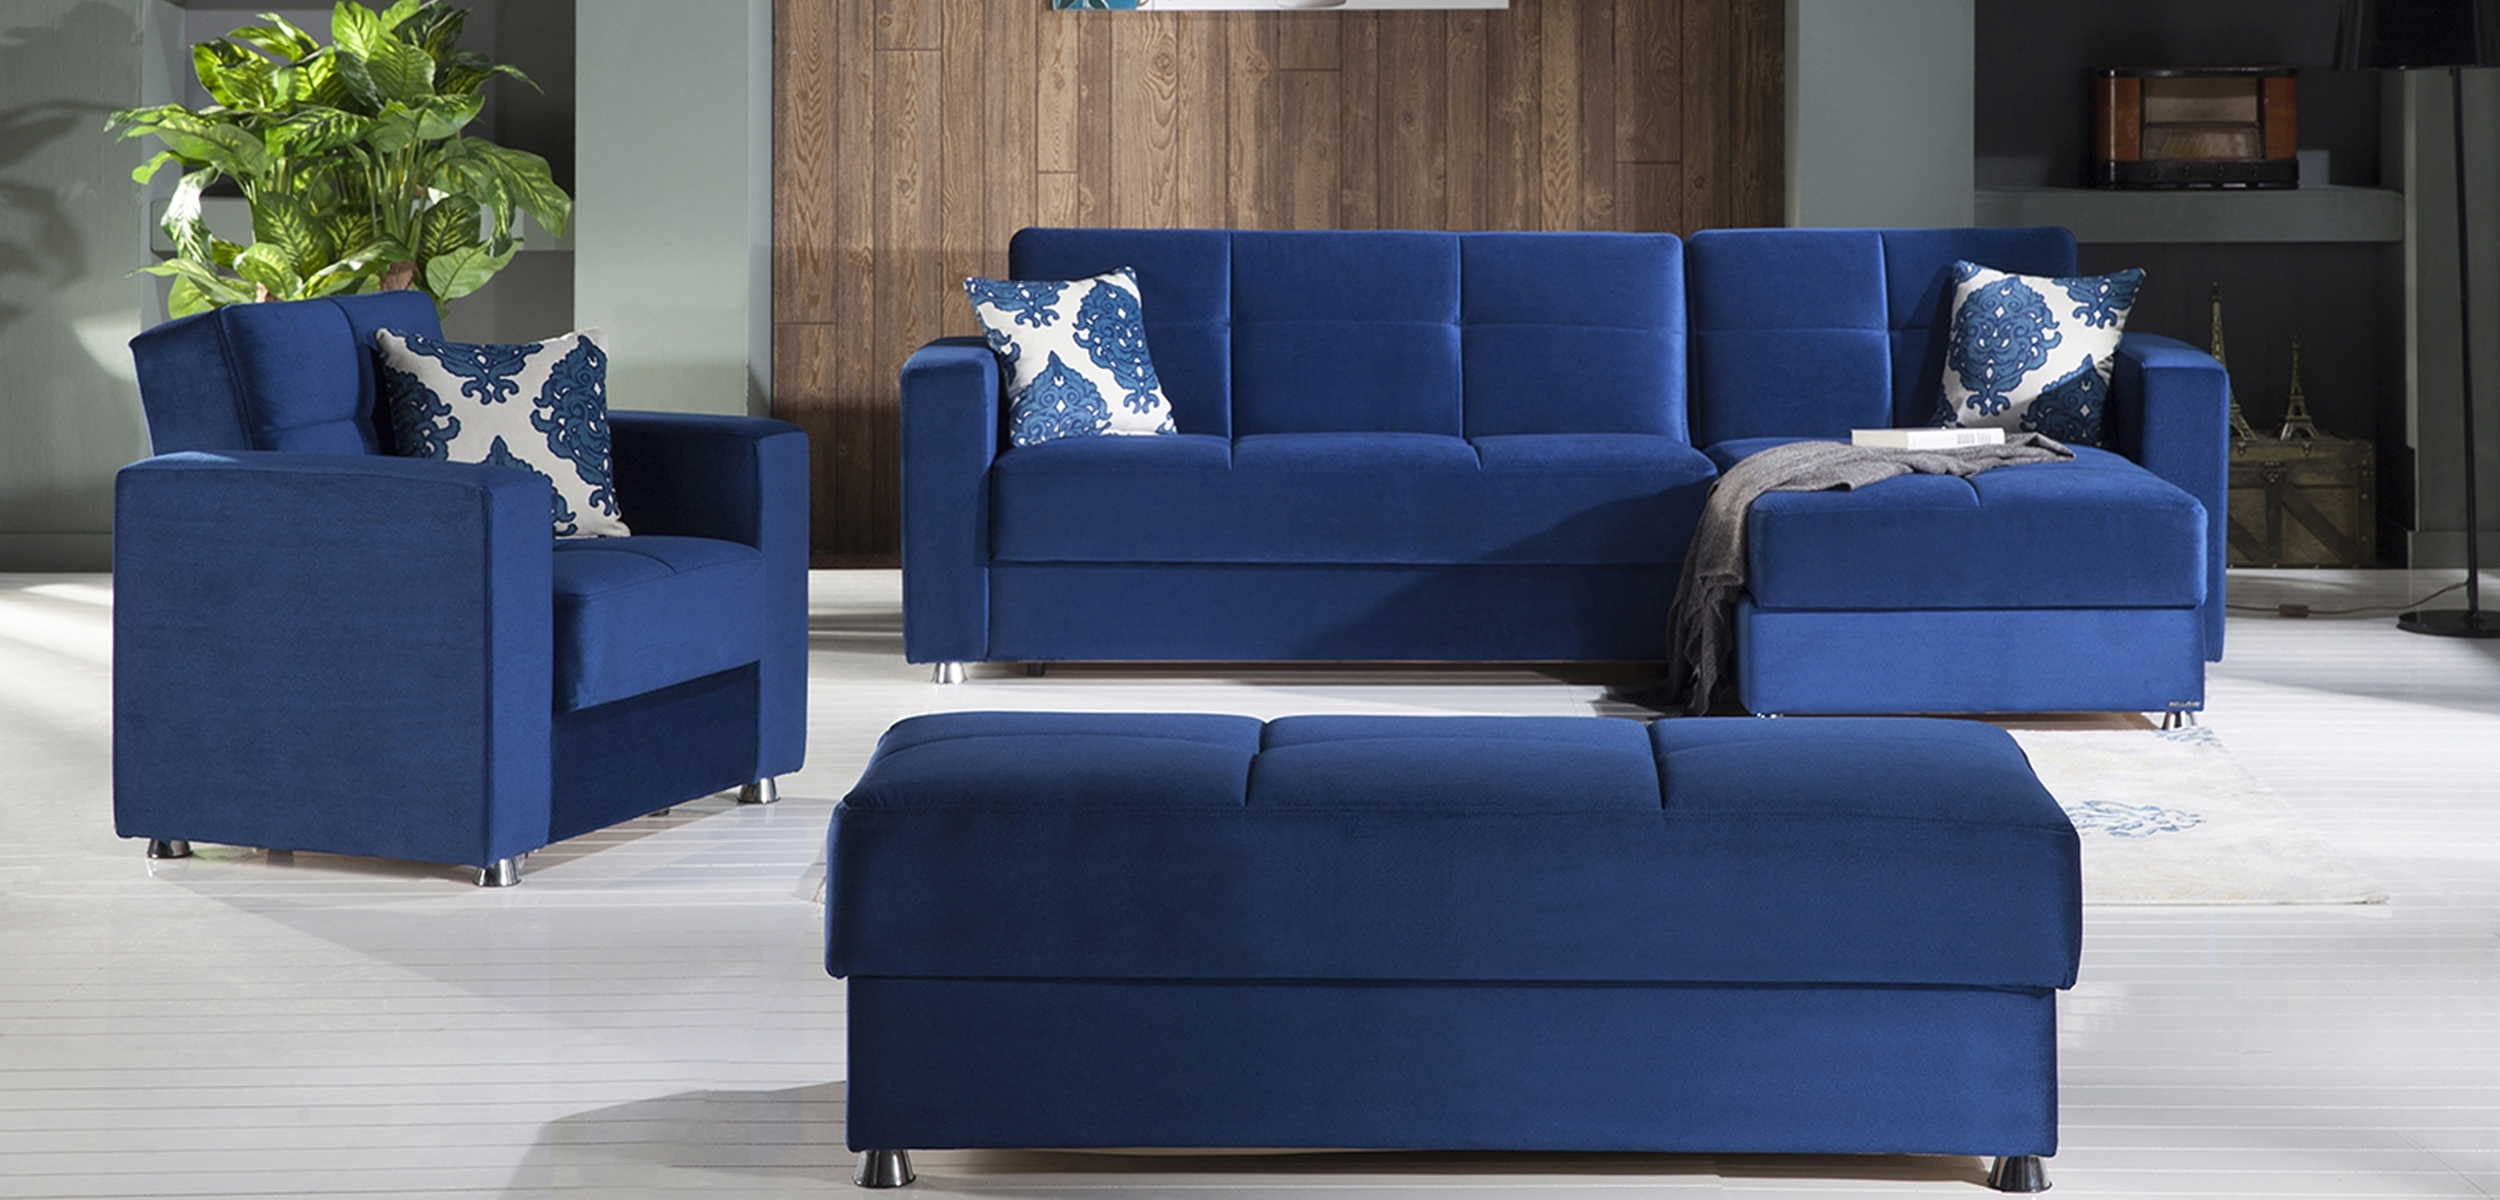 Elegant Roma Navy Sectional Sofaistikbal (Sunset) With Elegant Sectional Sofas (View 4 of 10)